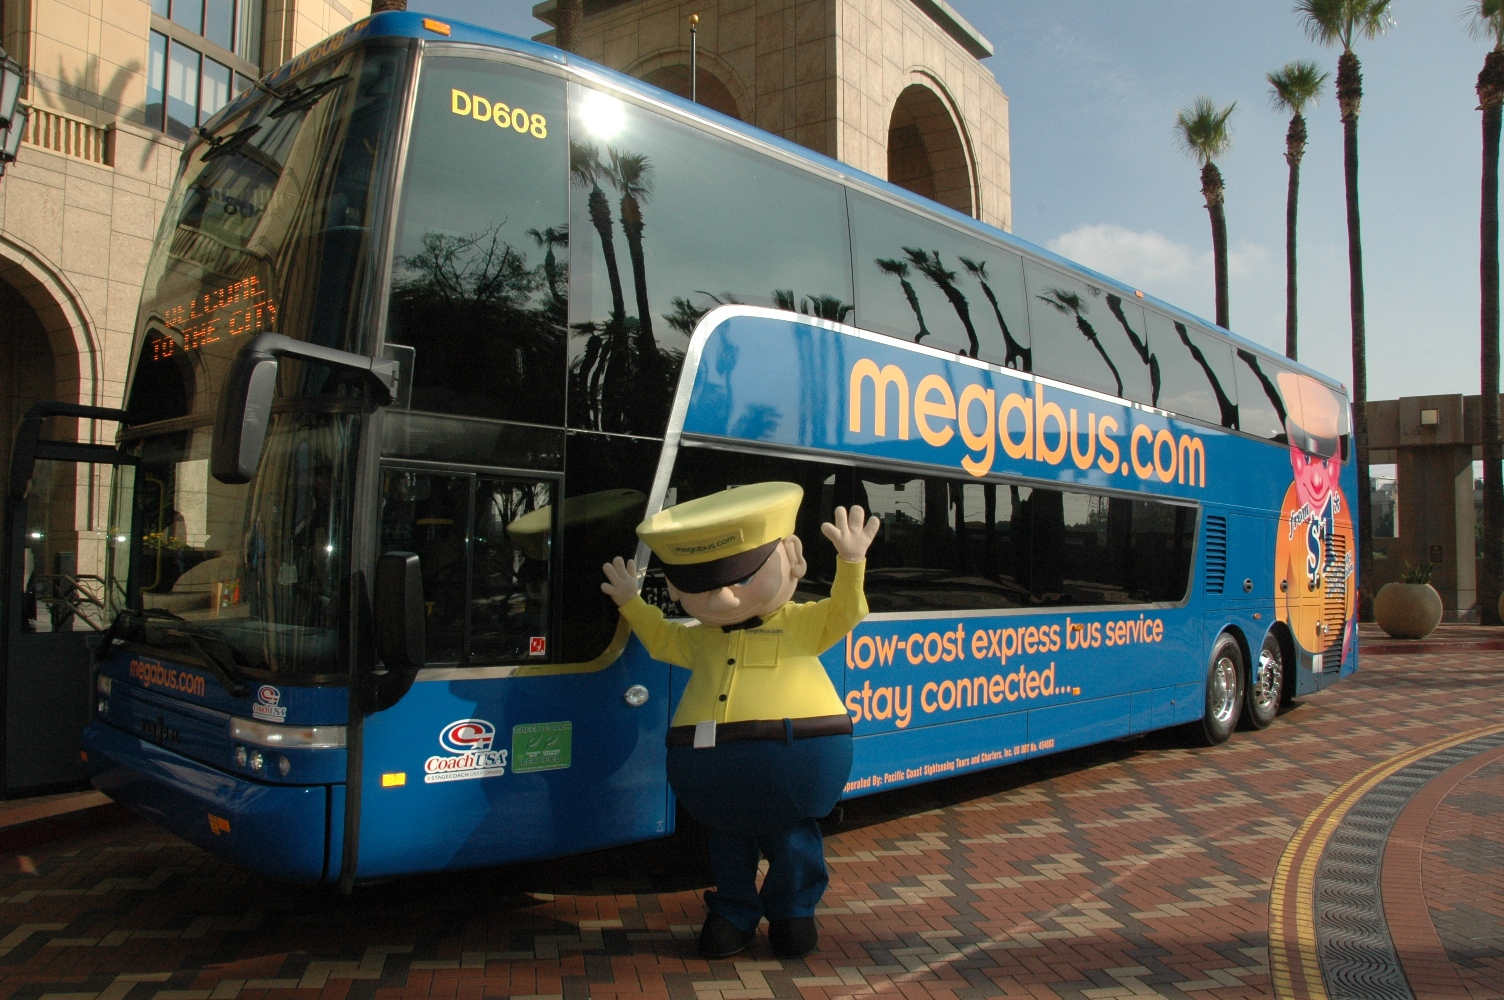 Megabus com to start service from Union Station on Dec 12